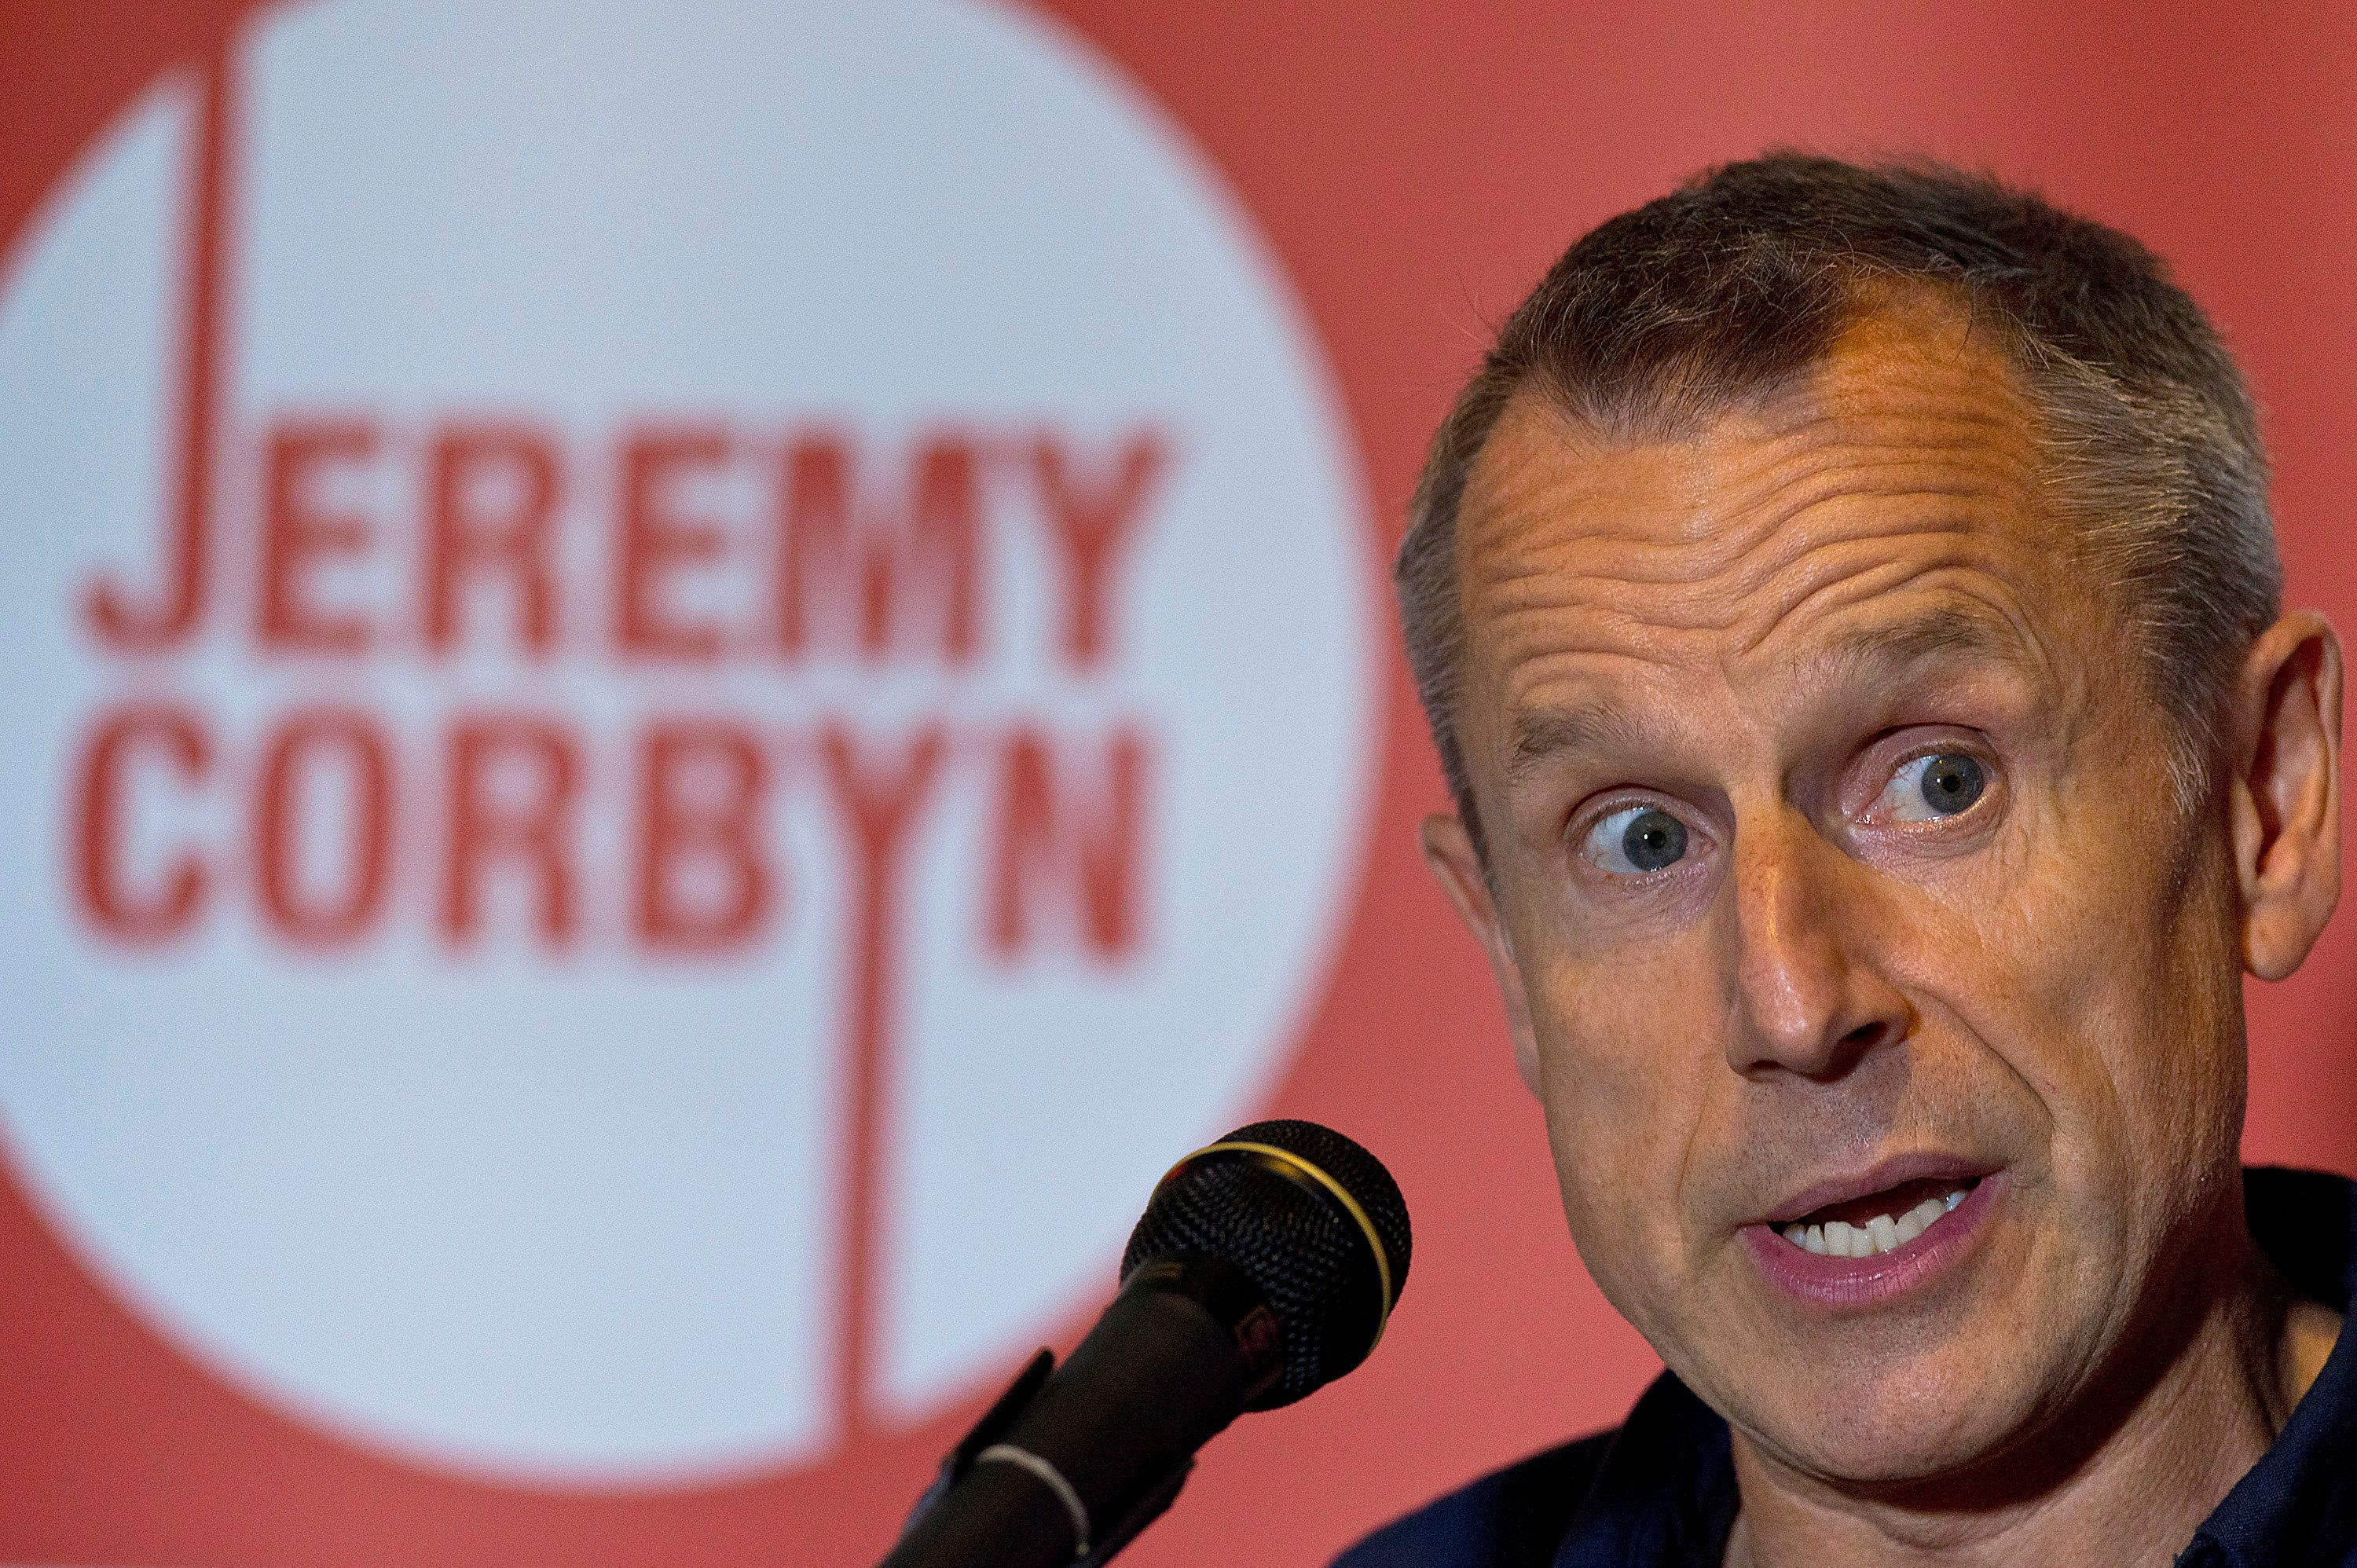 Jeremy Hardy has died at the age of